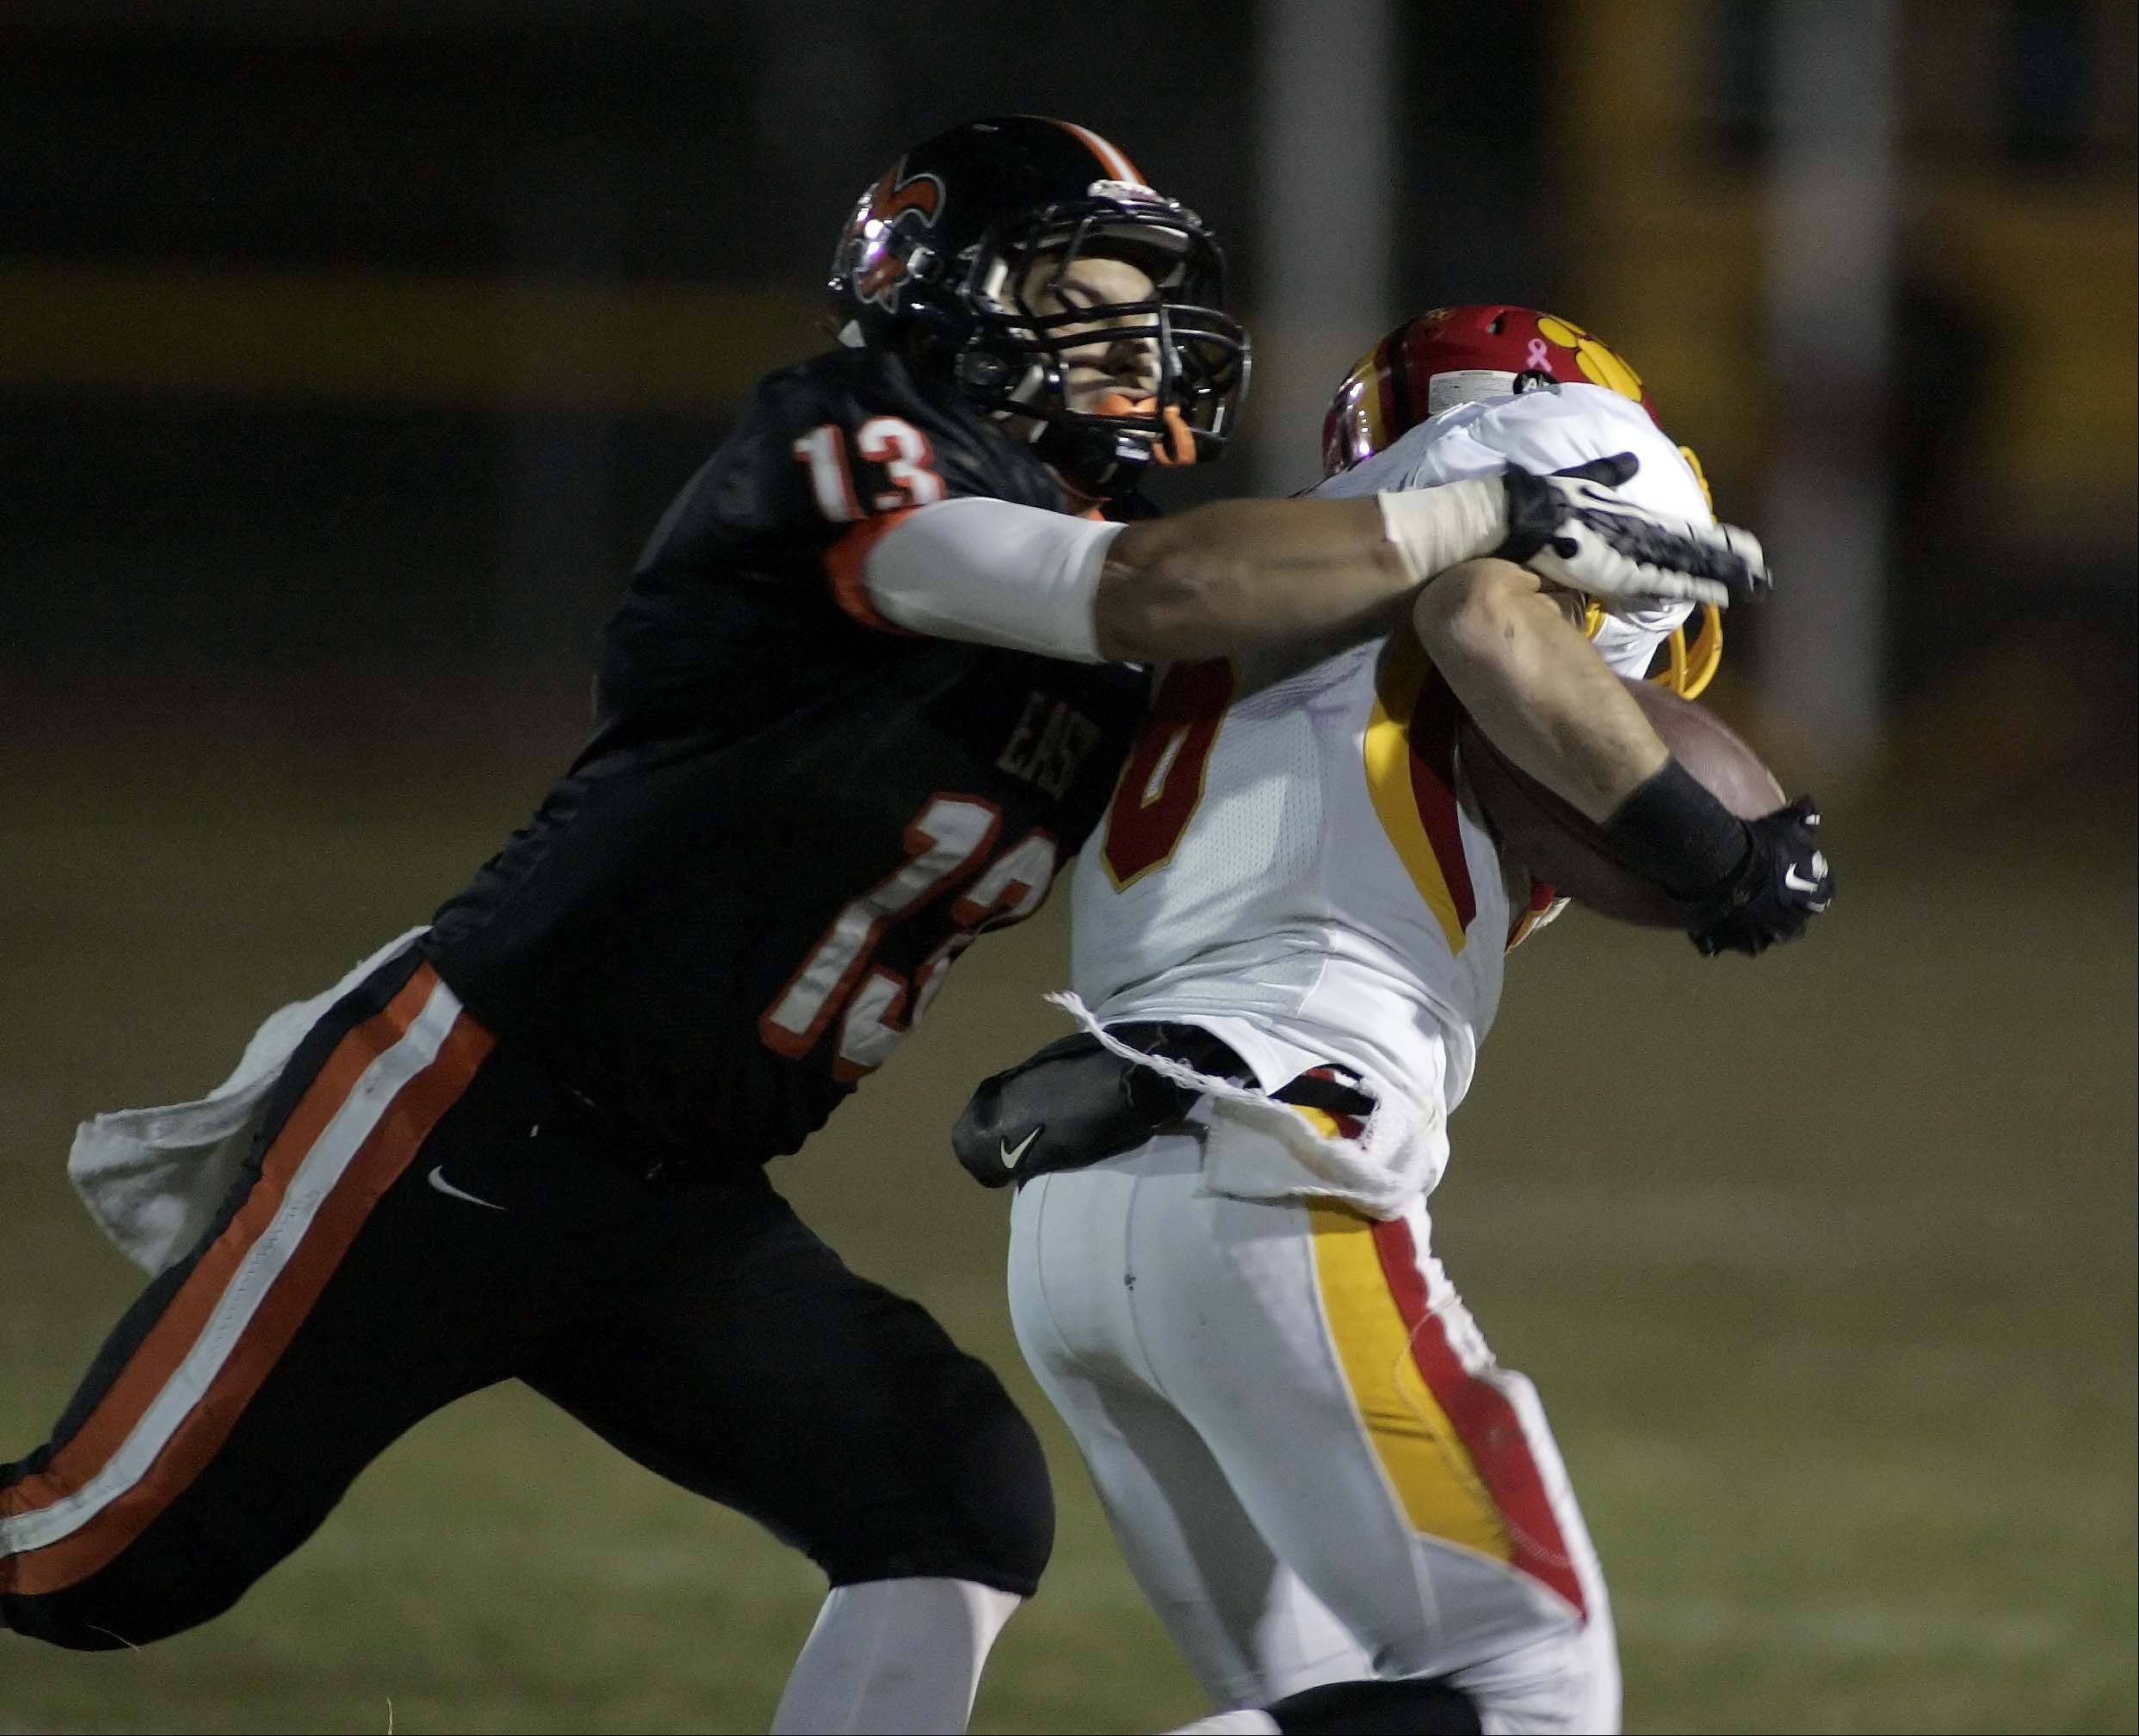 St. Charles East's Anthony Sciarrino wraps up Batavia's Rourke Mullins.